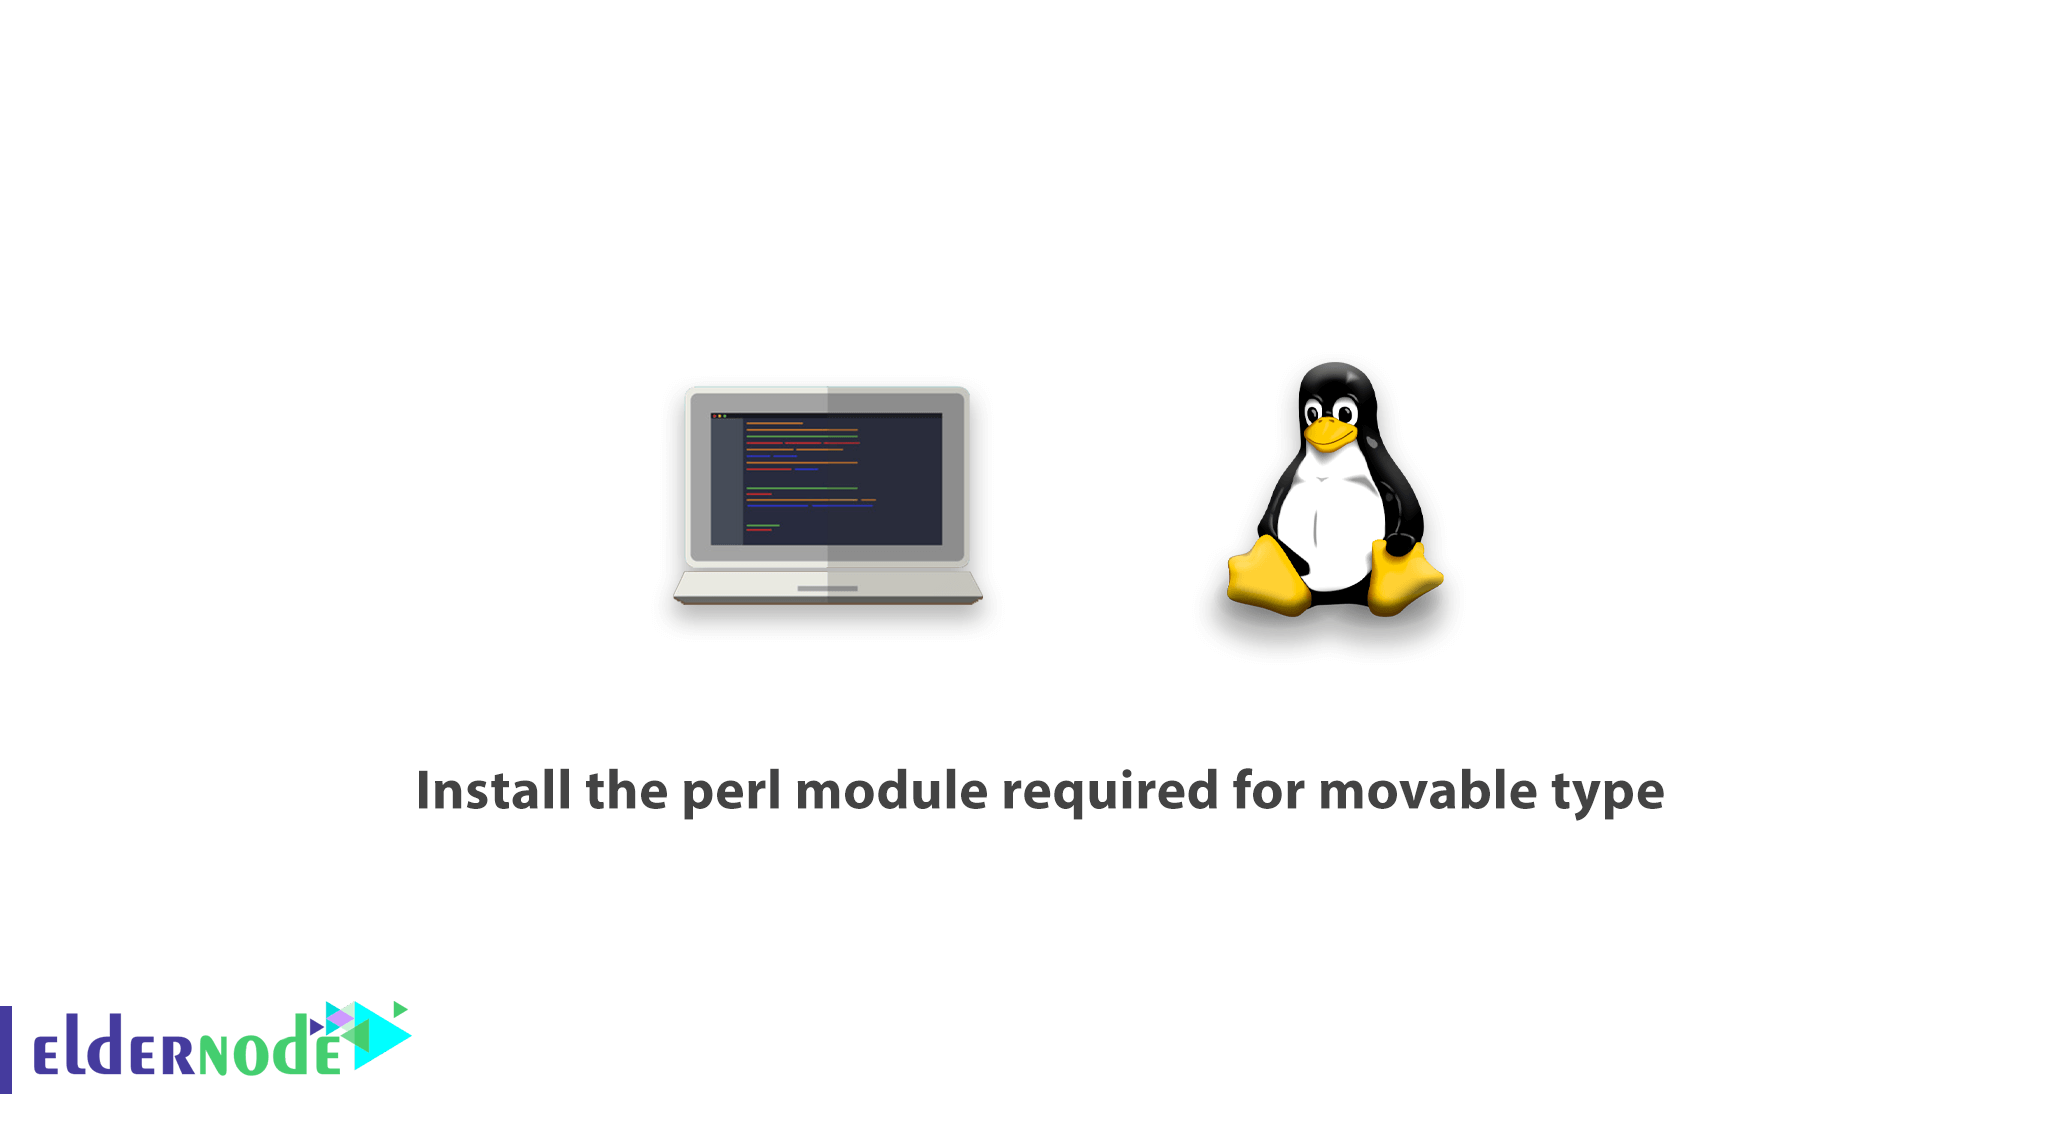 Tutorial Install the perl module required for movable type